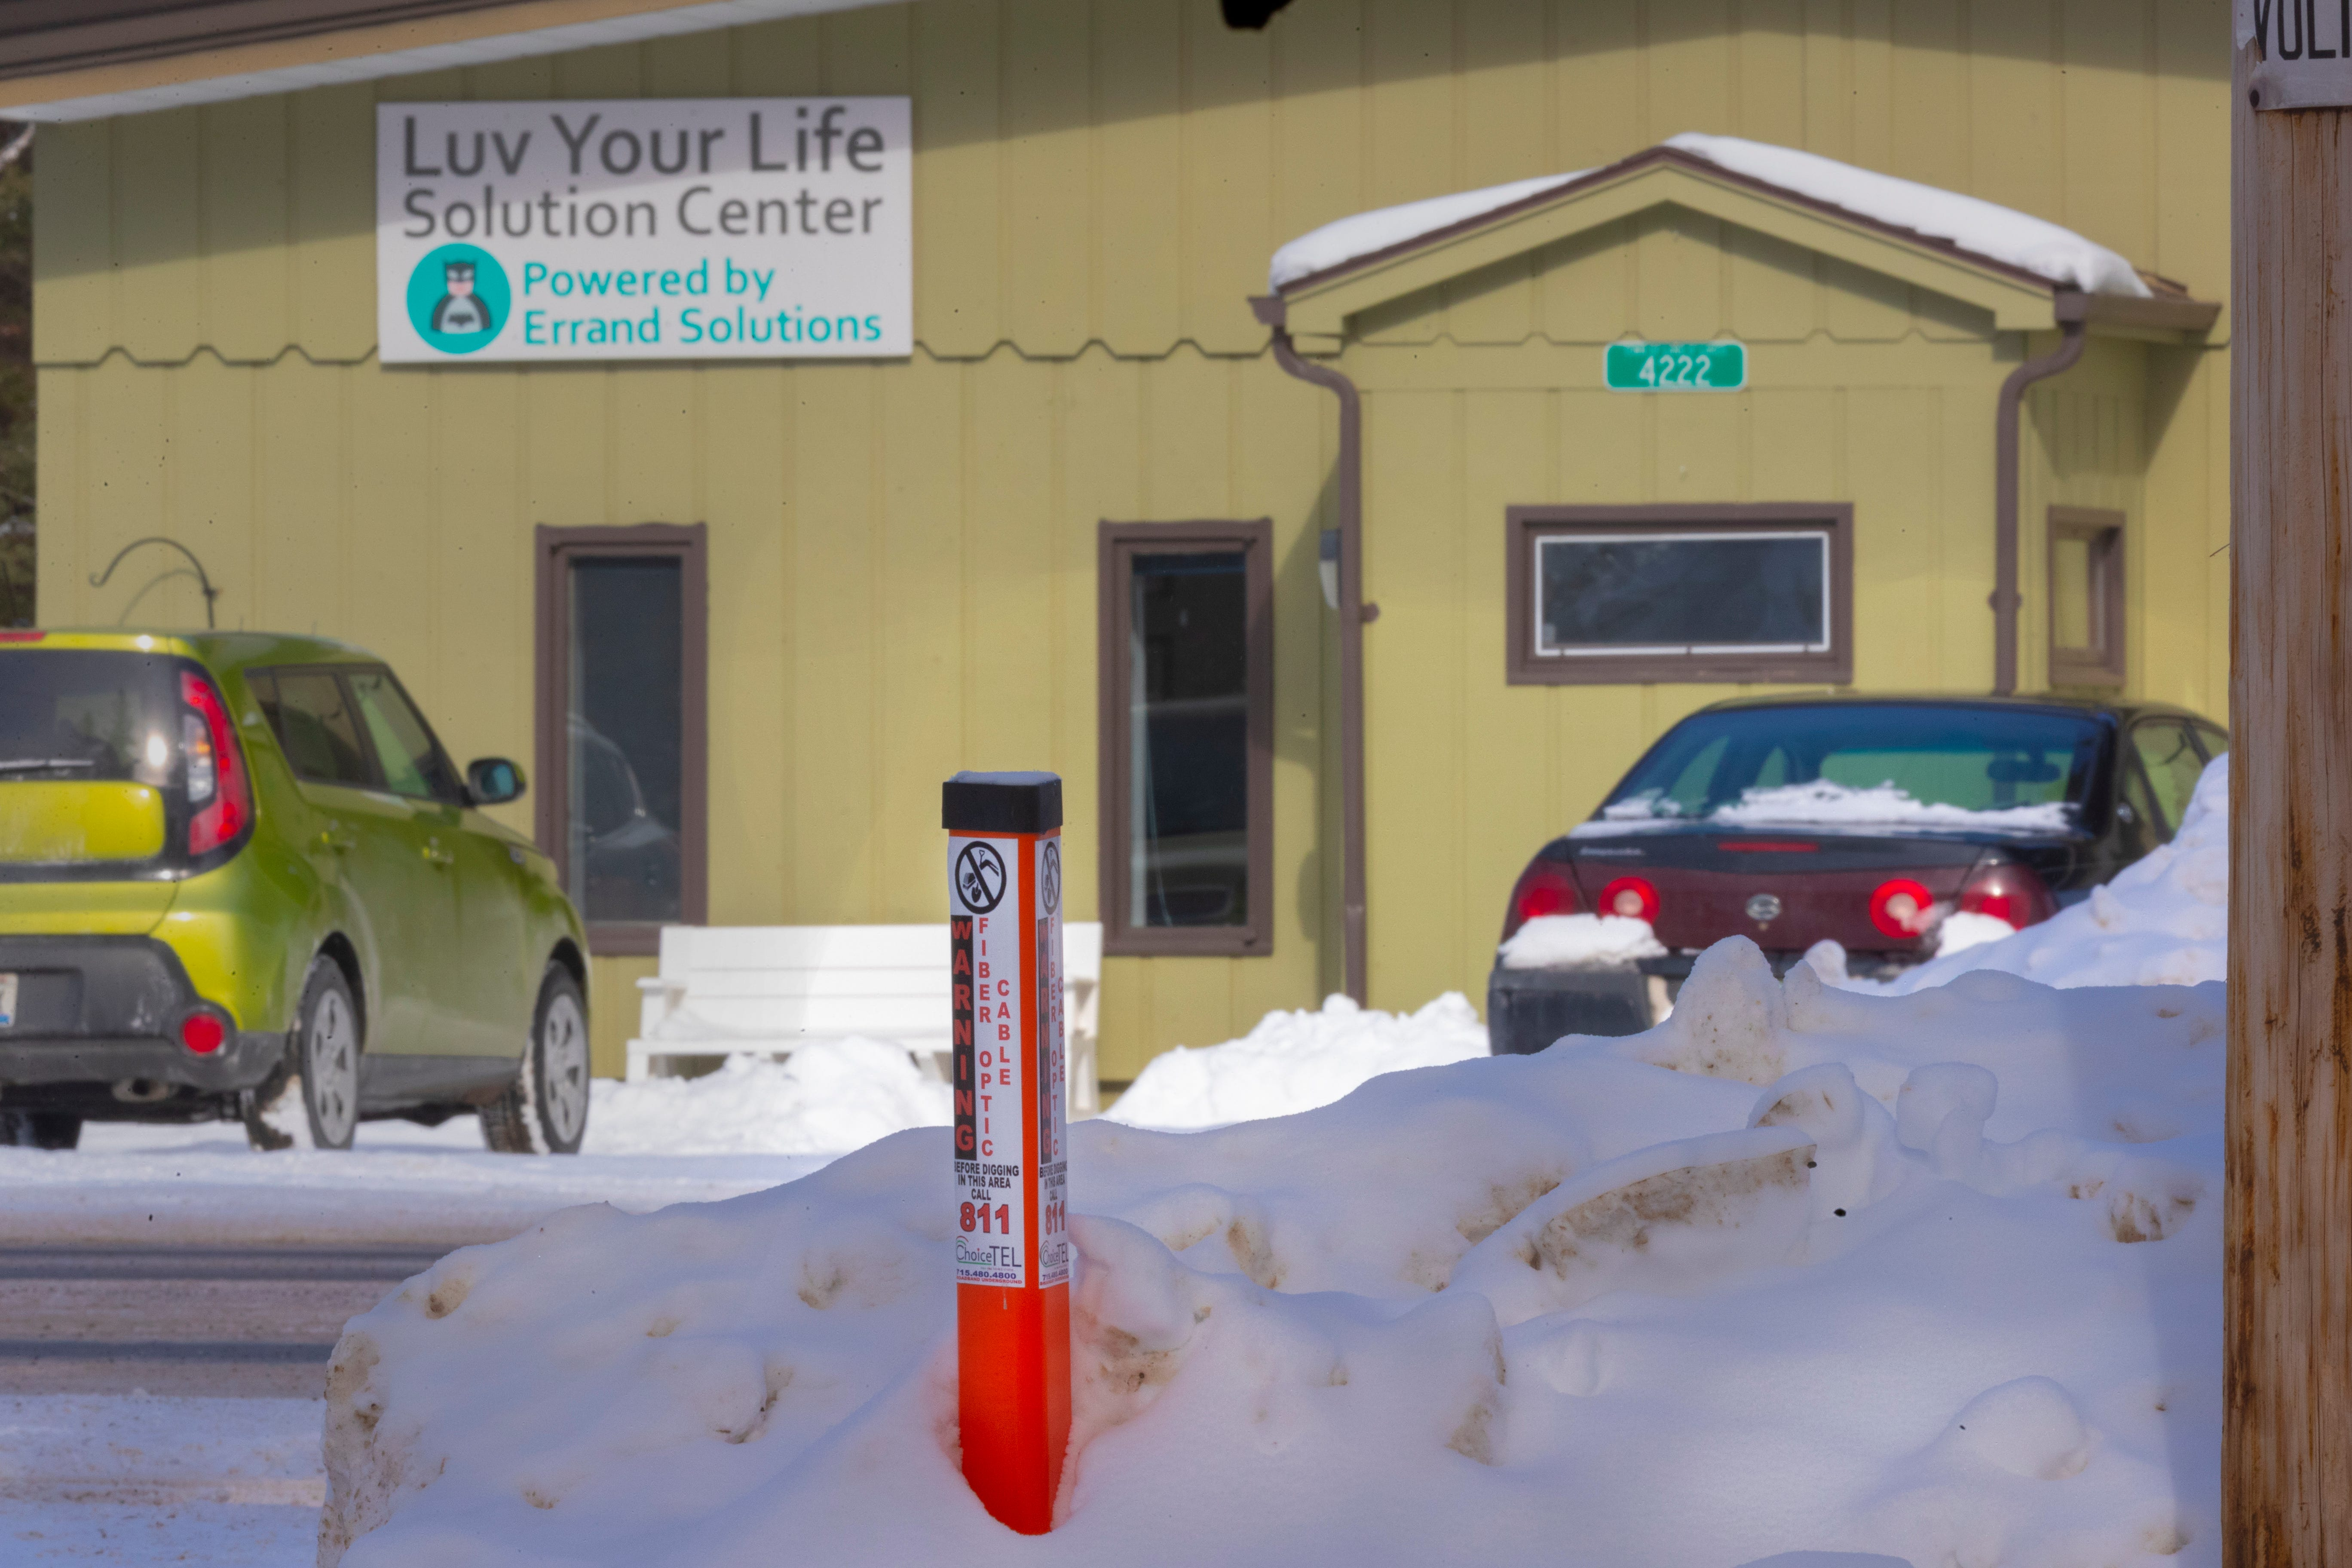 A marker for the fiber optic line is shown about 100 feet from the Luv Your Life Solutions Center in Land O' Lakes.